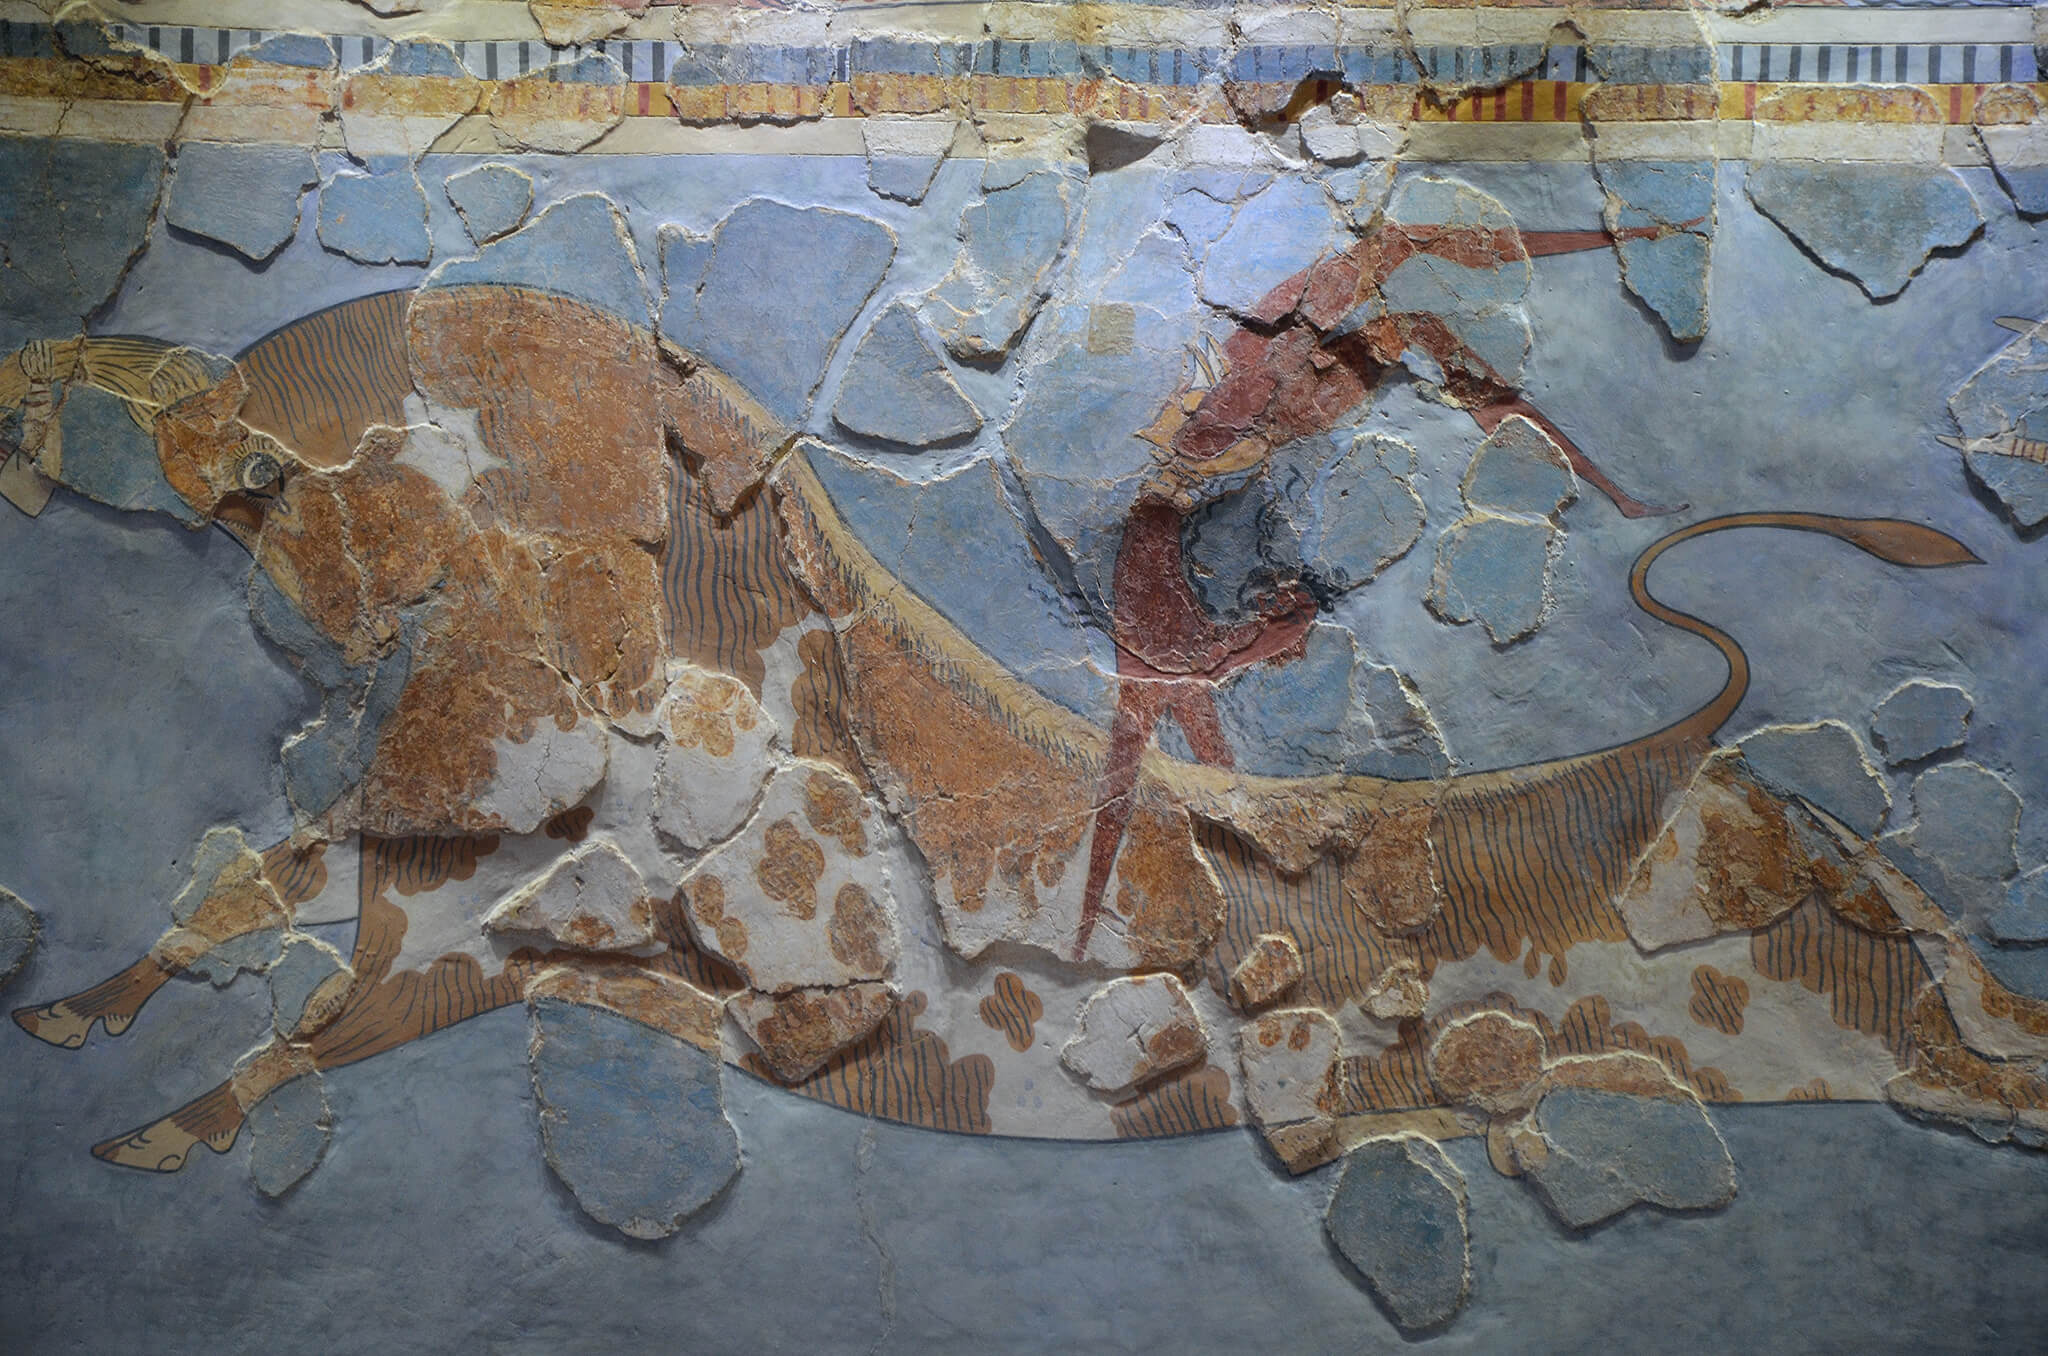 Minoan Bull Leaping fresco close-up